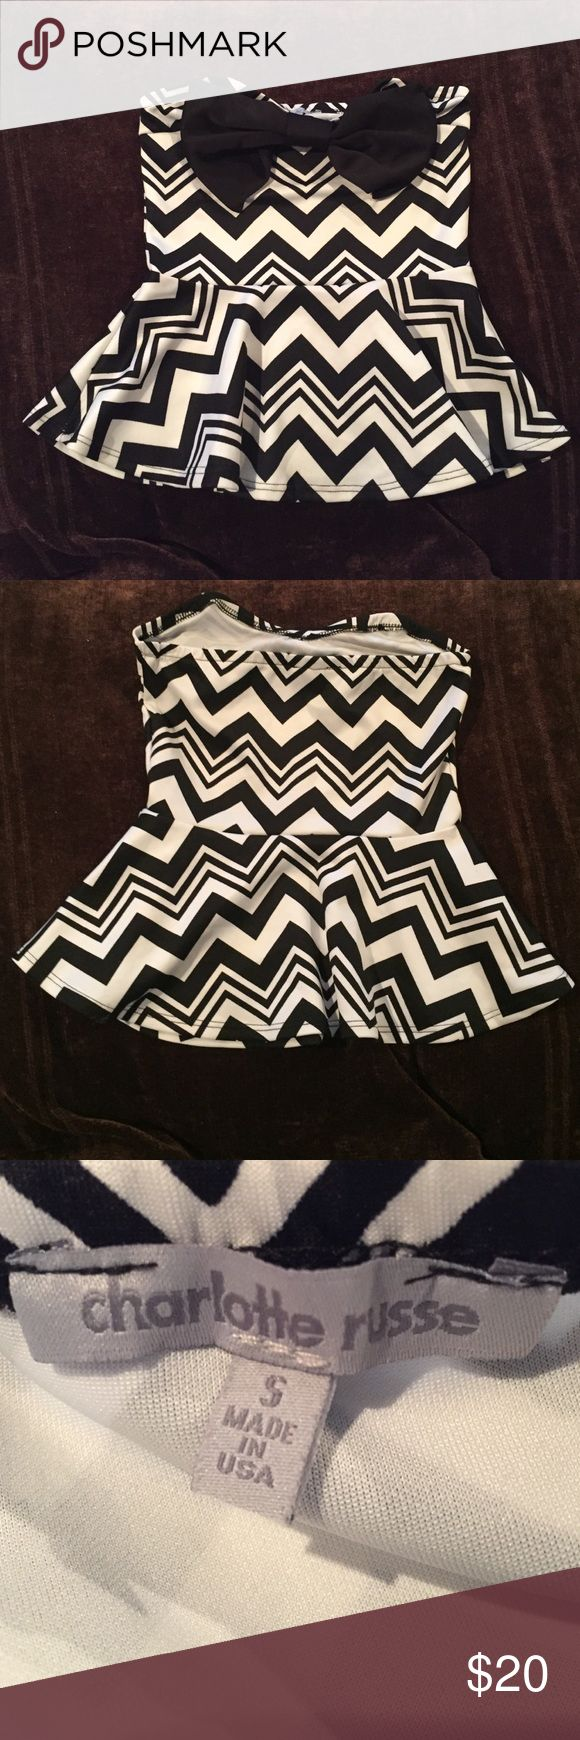 Charlotte Russe Strapless Chevron Top Charlotte Russe strapless black and white Chevron dress top with bow. Super cute to wear with a tight black skirt or pants! Dress up or dress down. Worn once, great condition. Charlotte Russe Tops